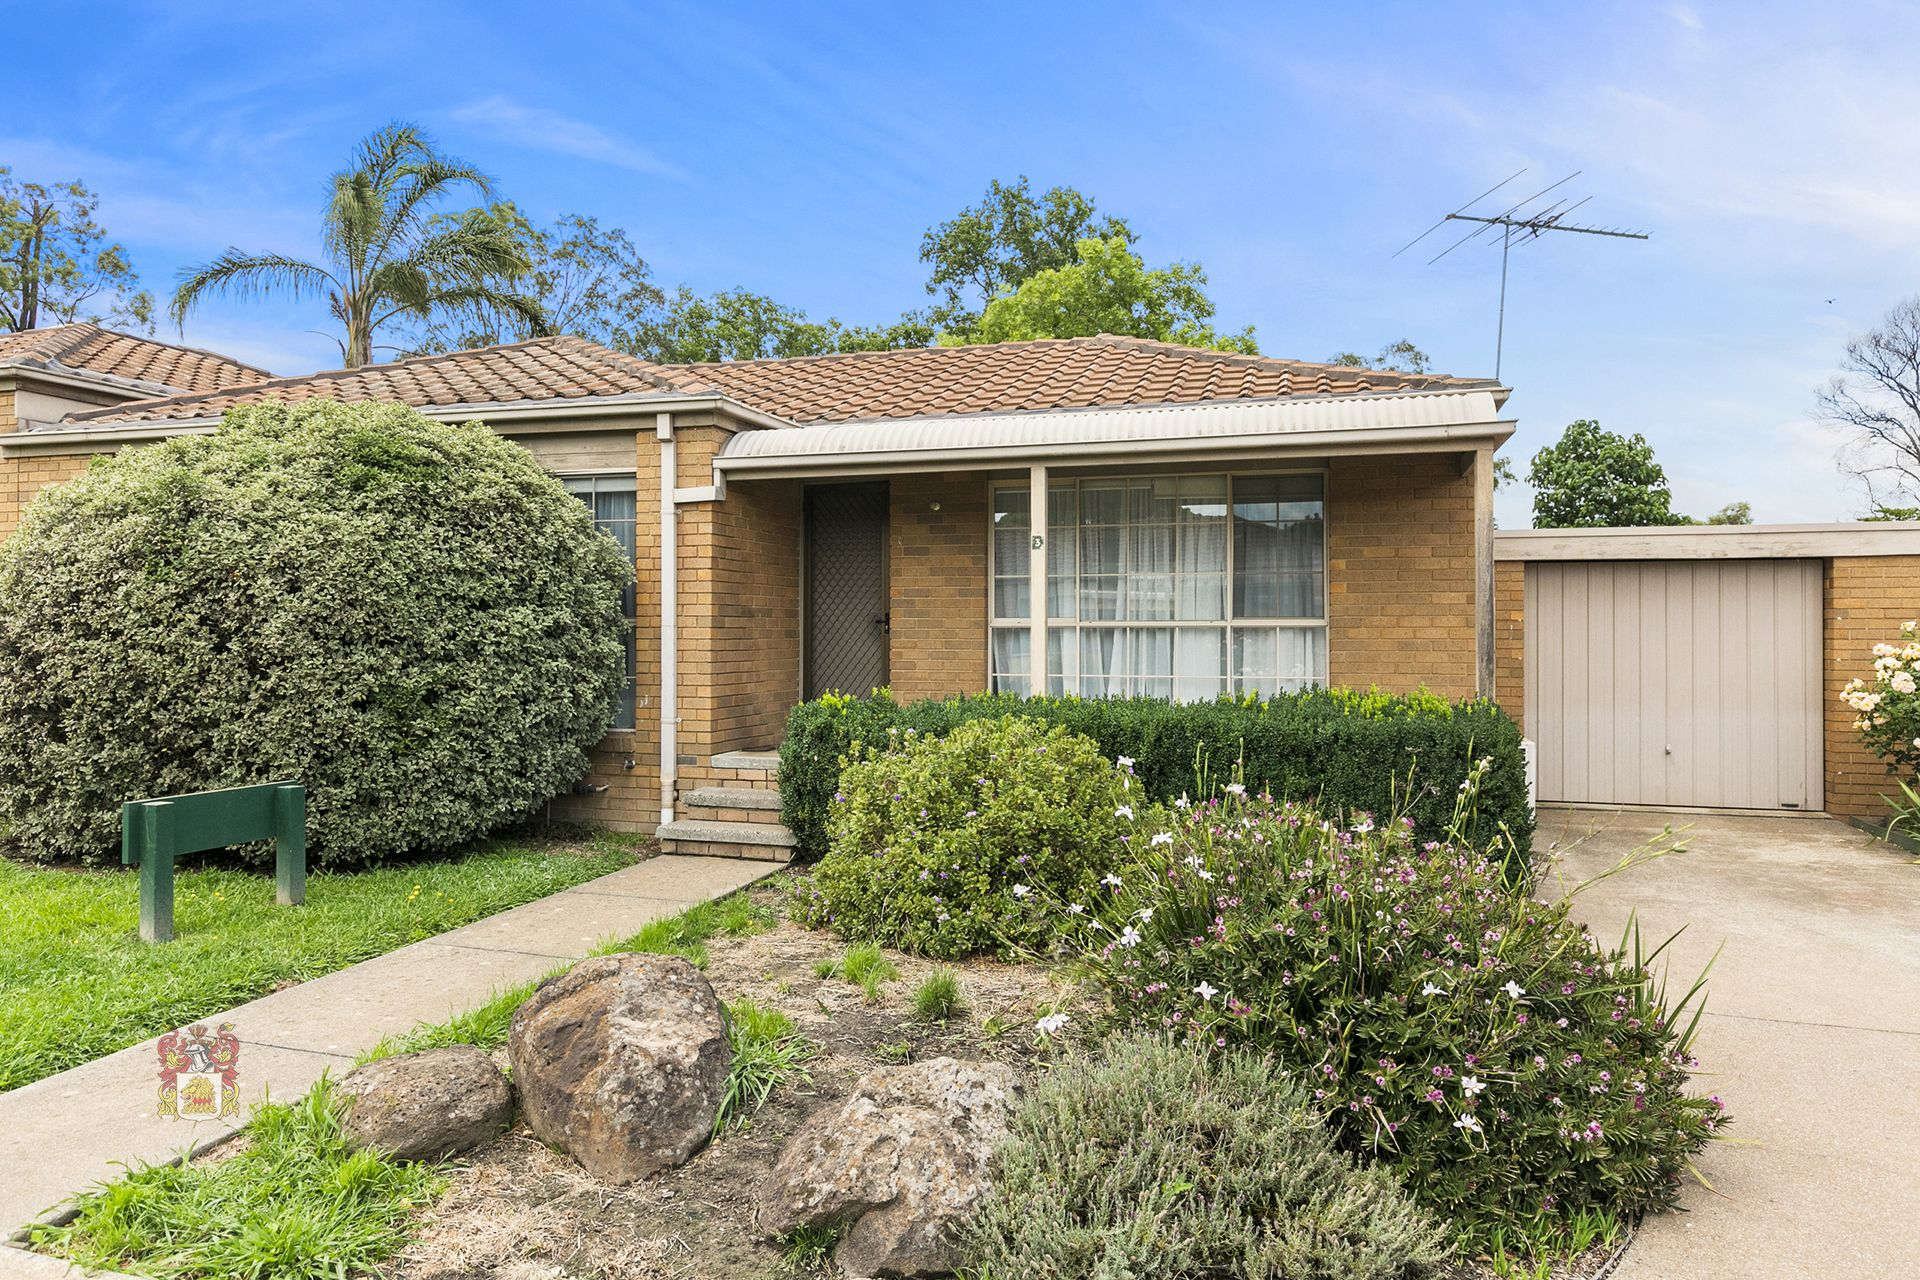 <br /> <b>Notice</b>:  Undefined index: street_address in <b>/home/integrit/public_html/wp-content/themes/apb-integrity/zoorealty/display/pages/opentimes.php</b> on line <b>110</b><br /> , Healesville VIC 3777